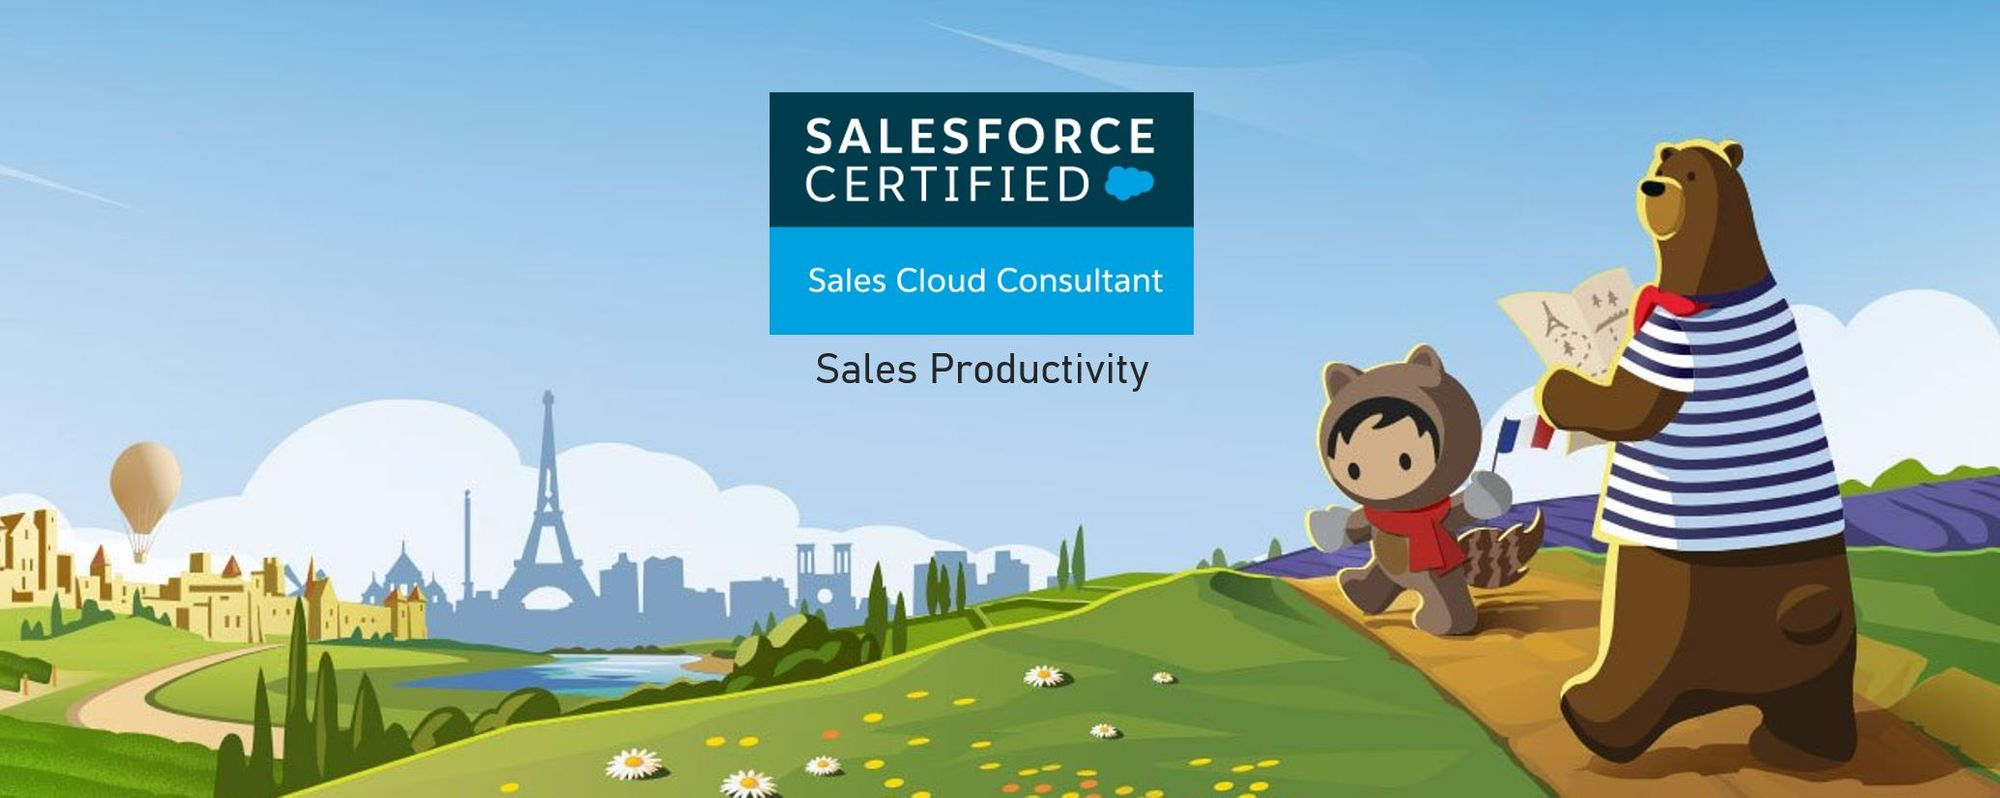 Salesforce Sales Cloud Consultant Exam Preparation: Sales Productivity